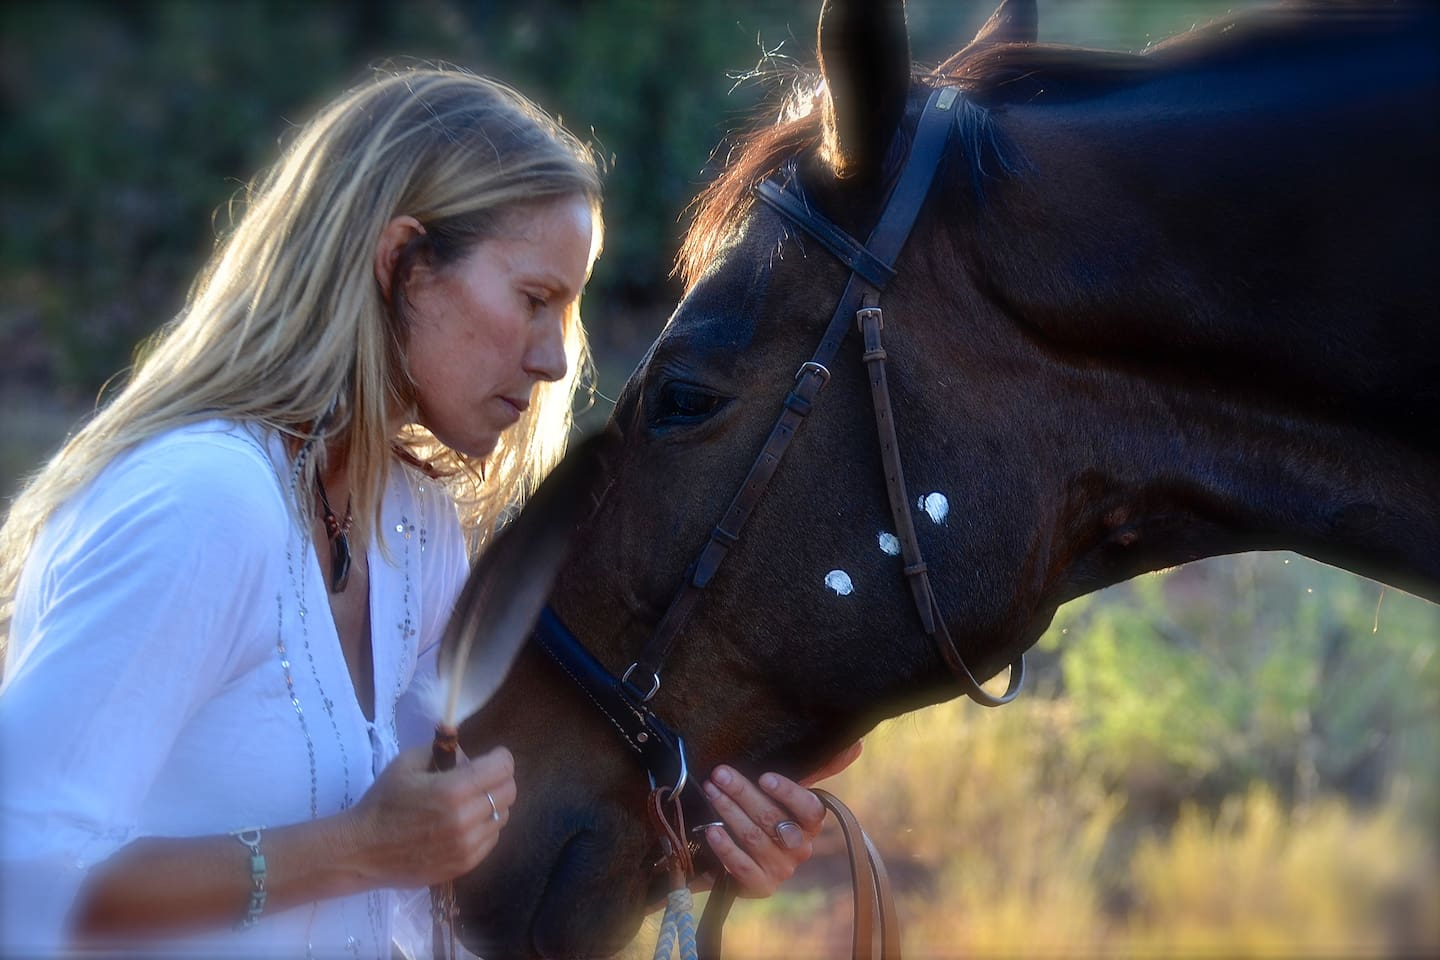 Horse Medicine, Meditation, Ceremony, Sound healing, hiking, private jeep journeys, horse riding and a cozy room with a view of Sedona's magnificent high mountain forestry and more....a truly special Sedona experience...see why we are the most frequently visited Airbnb in Sedona for 5 years running!